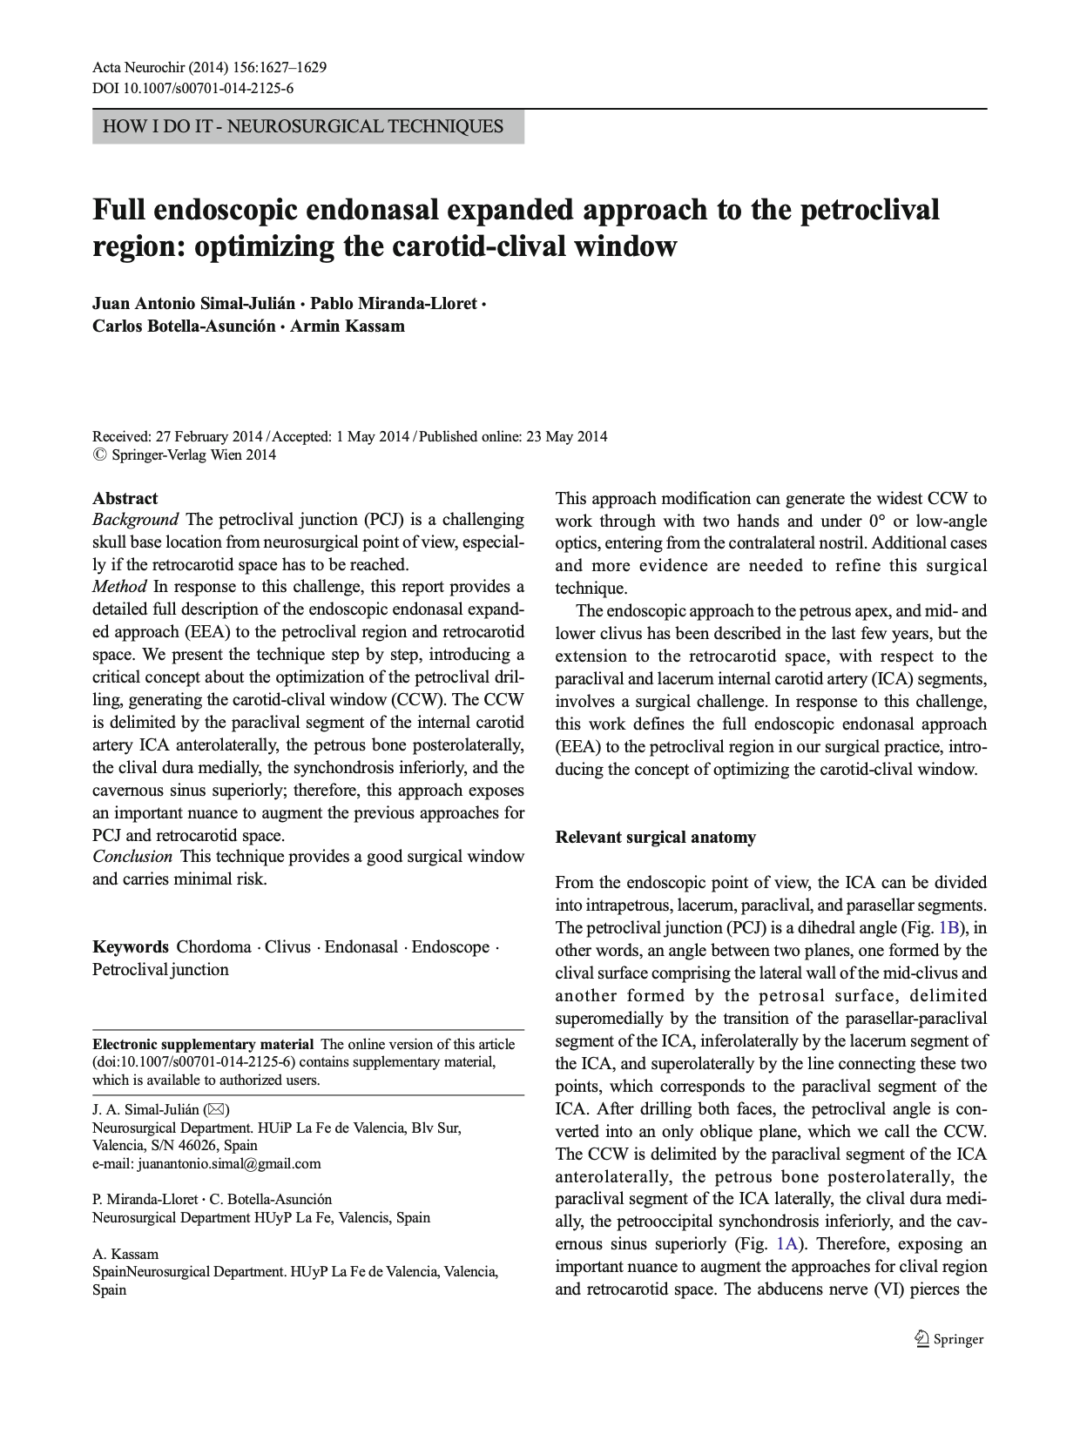 Full endoscopic endonasal expanded approach to the petroclival region: optimizing the carotid-clival window